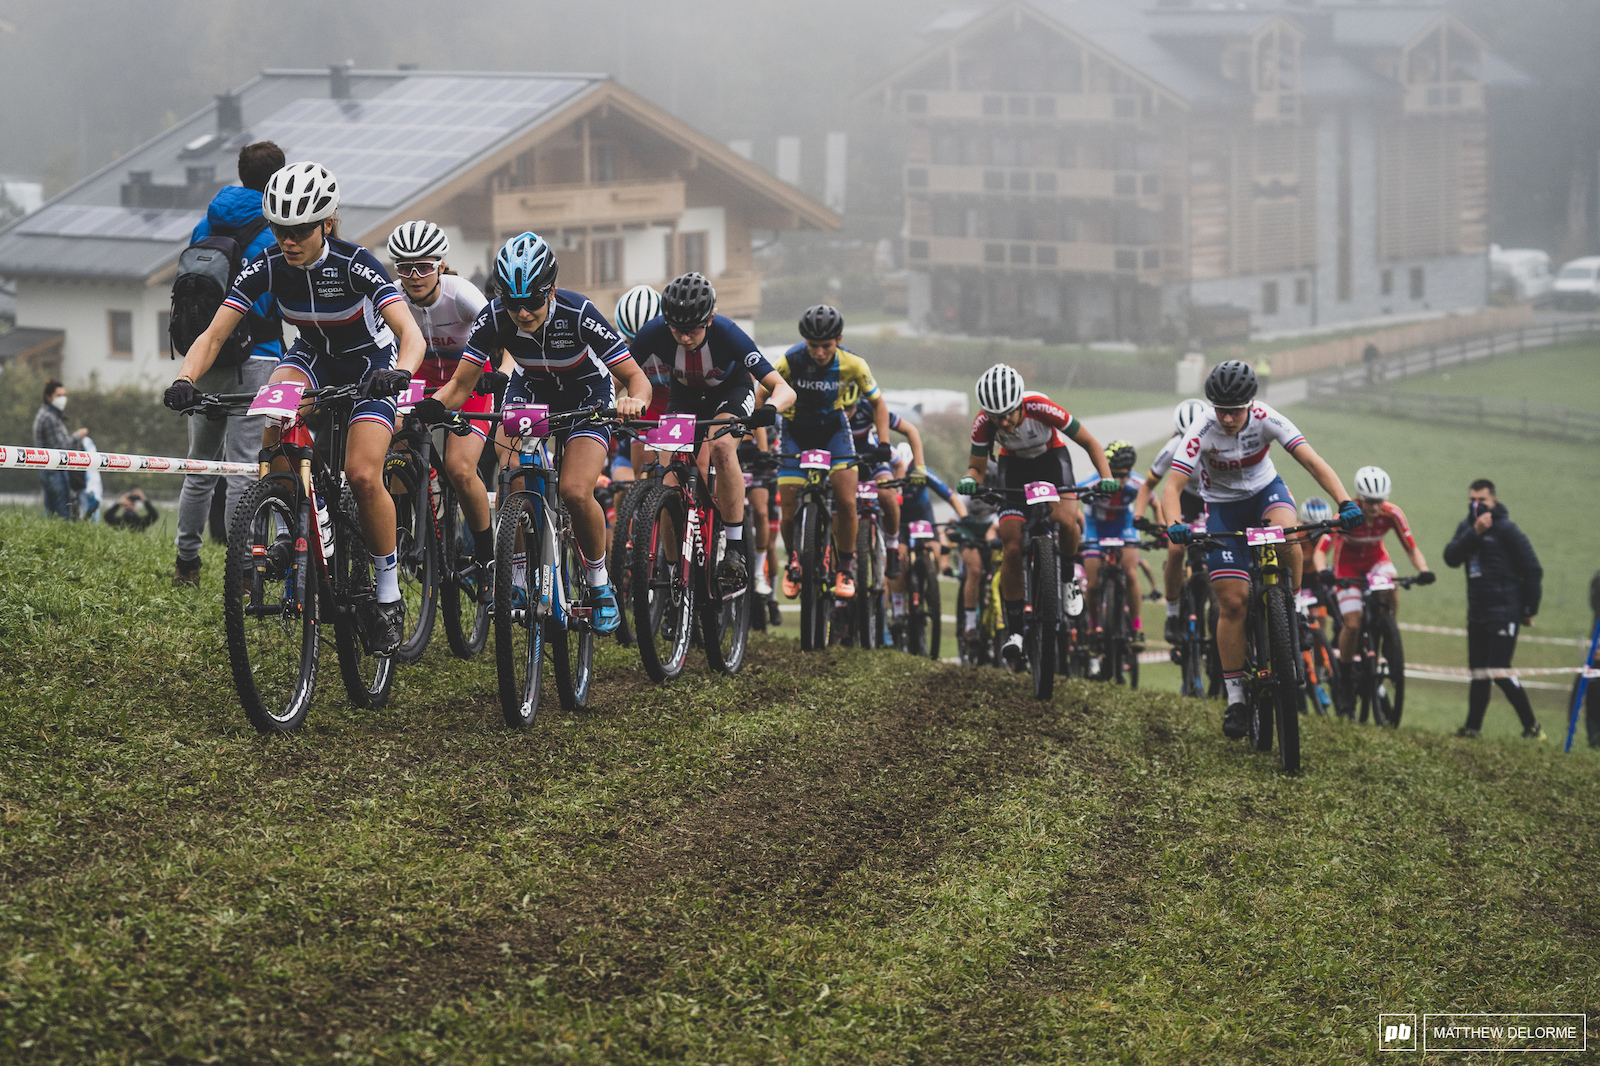 Lecomte leads the charge off the start.